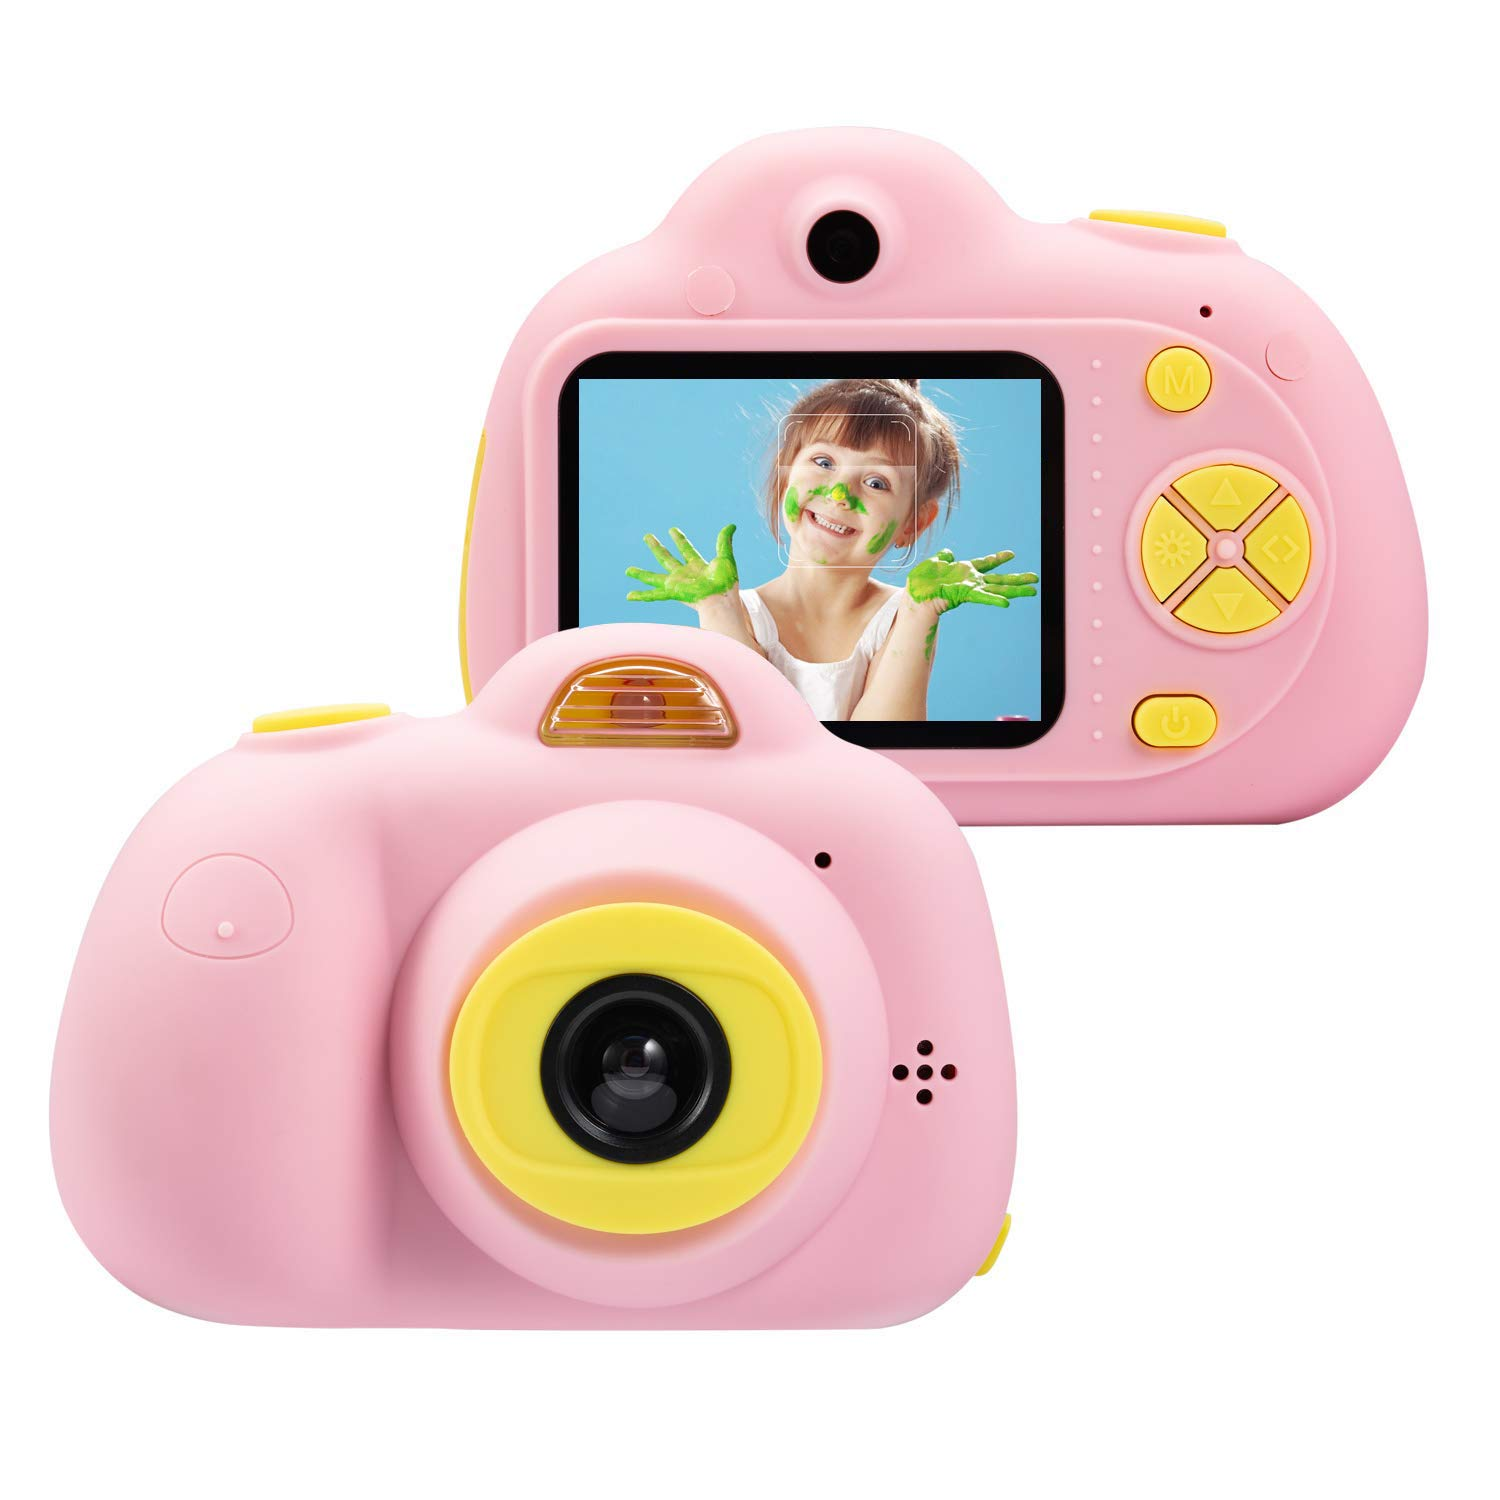 DIIGIITO Kids Camera Gifts for 4-8 Year Old Girls, Shockproof Cameras Great Gift Mini Child Camcorder for Little Girl with Soft Silicone Shell for Outdoor Play,(16GB Memory Card Included) (Pink) by DIIGIITO (Image #1)